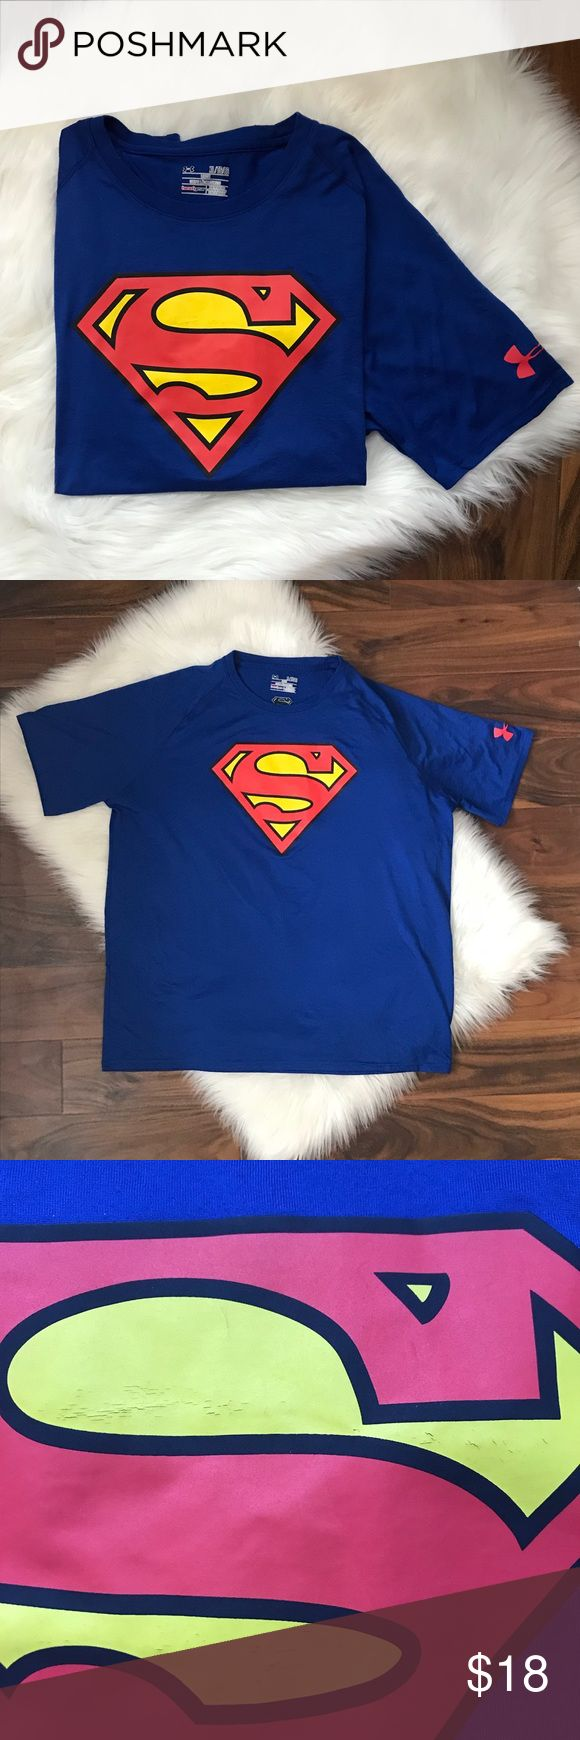 UA Superman workout t shirt Under Armour Superman workout short sleeve t shirt. Slight cracking on Superman symbol as shown in photos. Men's SZ extra large loose fit. Under Armour Shirts Tees - Short Sleeve